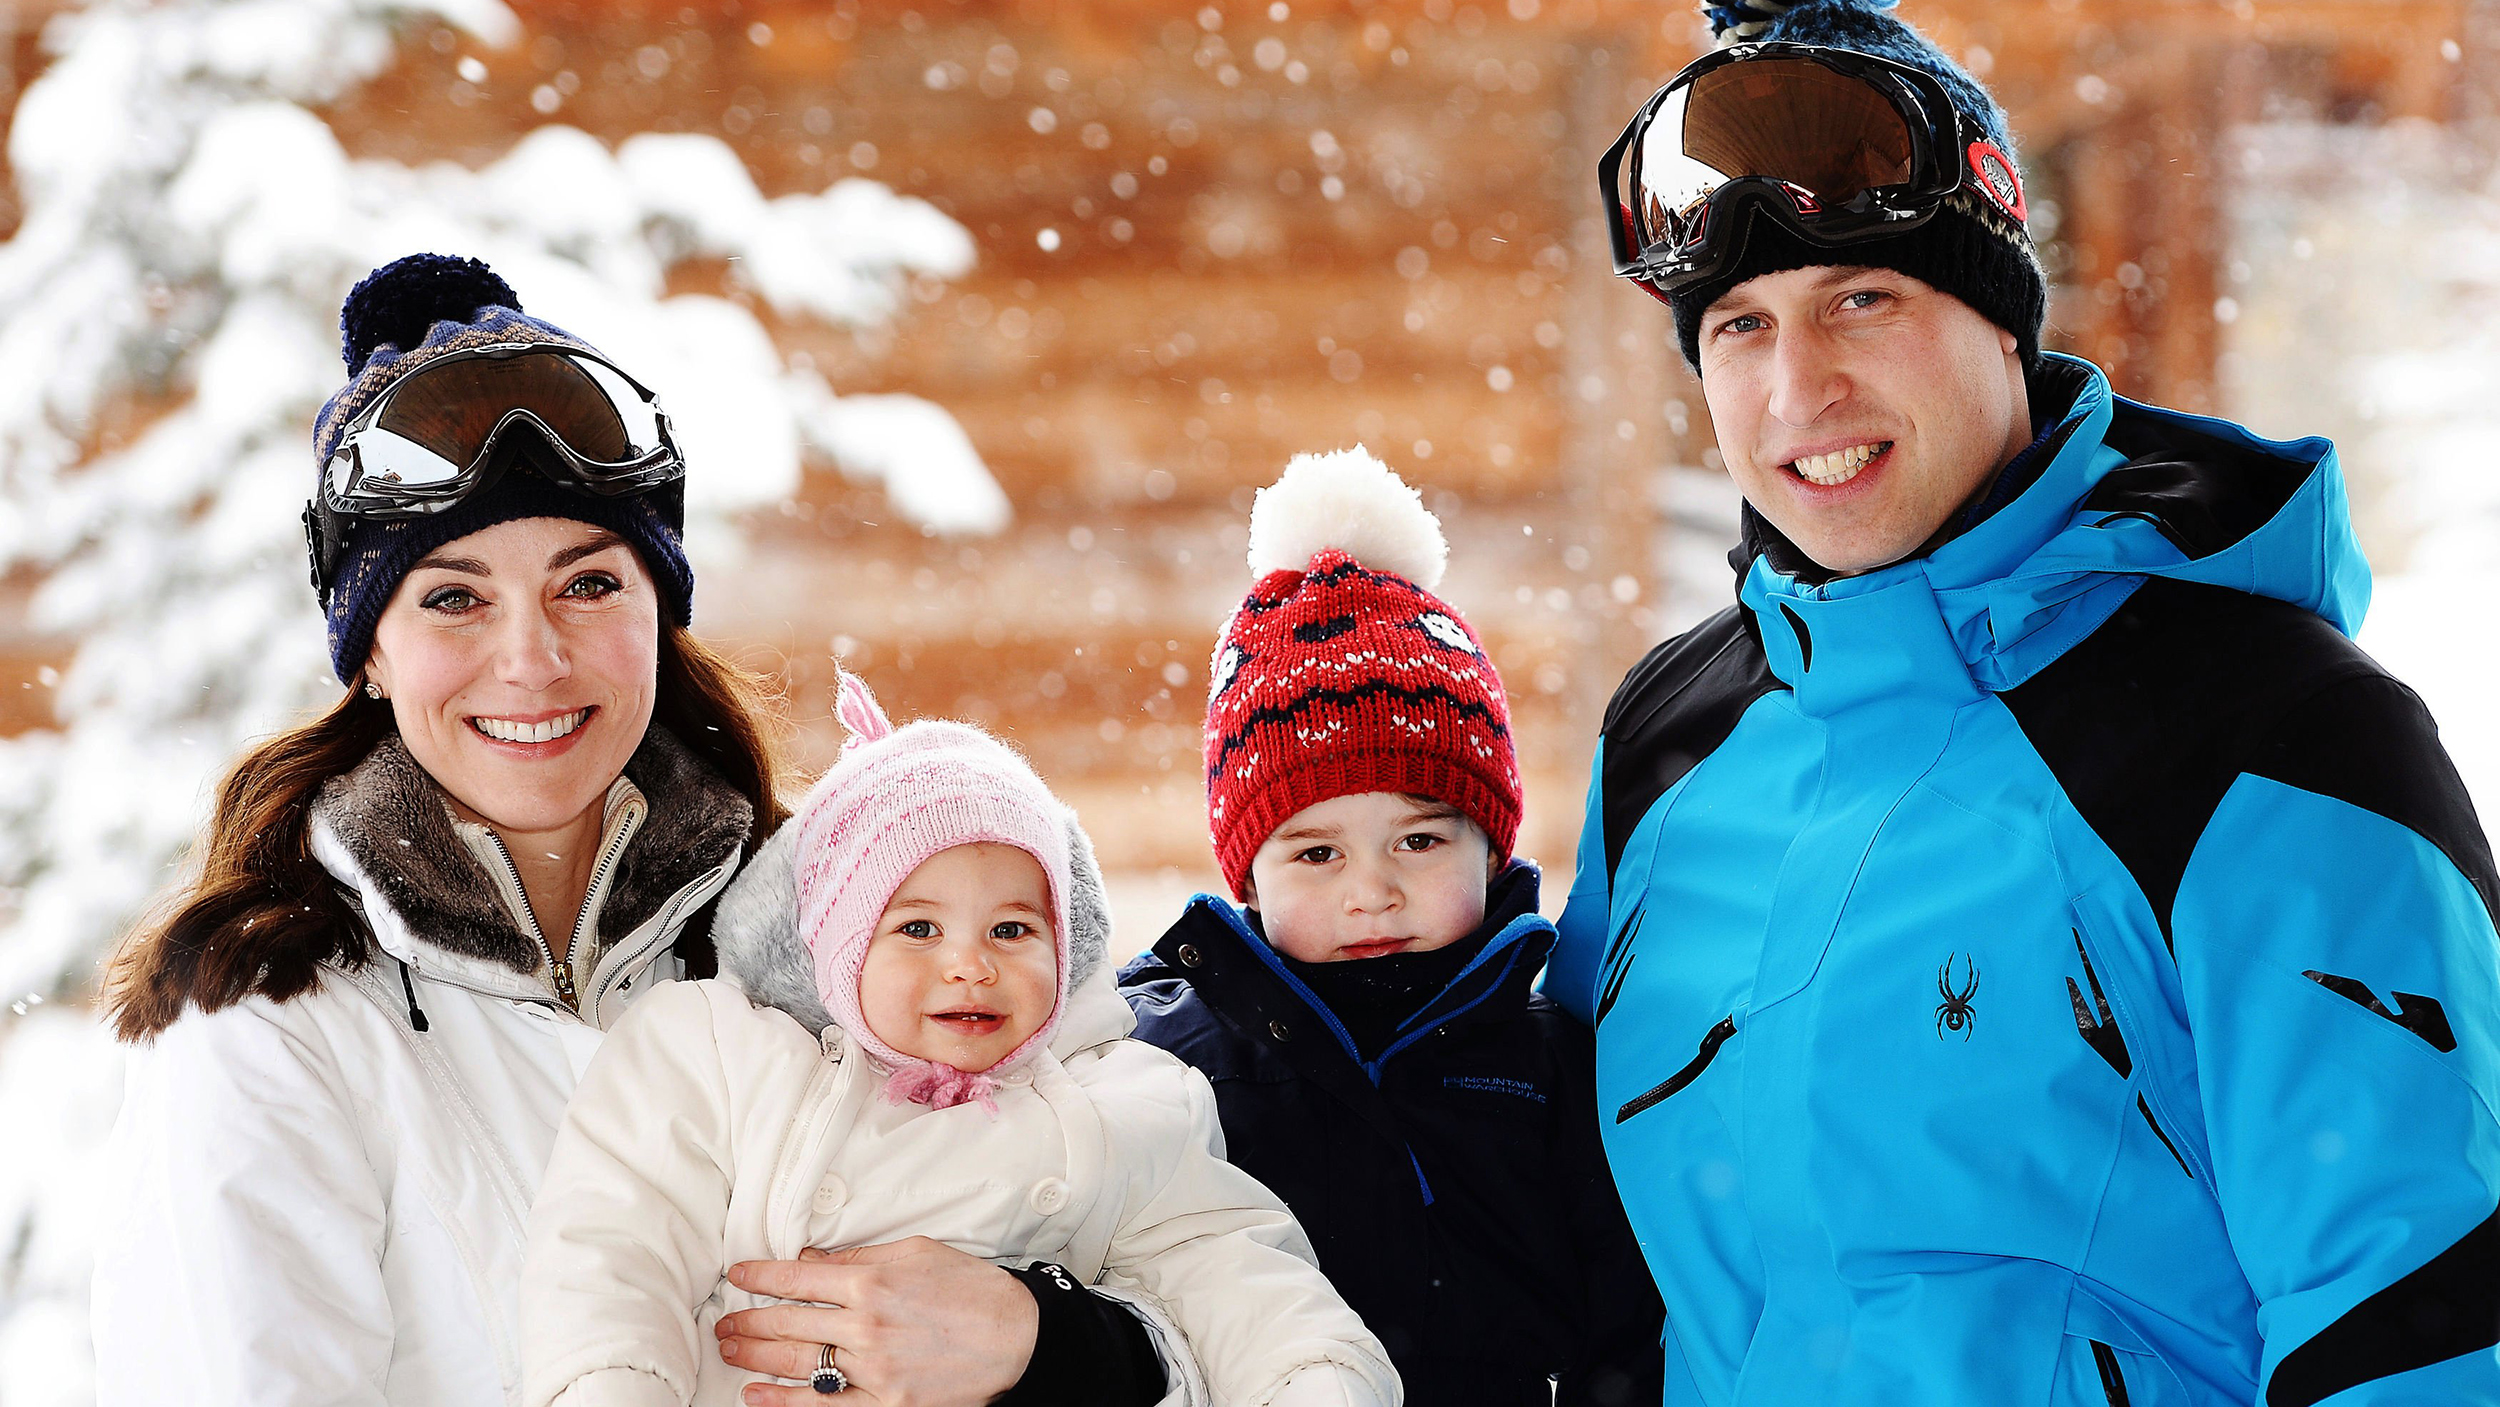 Britain's Prince William, right, and Duchess of Cambridge with their children, Princess Charlotte, centre left, and Princess George, enjoy a short private break skiing in the French Alps, Thursday March 3, 2016.  This is the first time the family of four have taken a holiday together. (John Stillwell/Pool via AP) NO COMMERCIAL USE